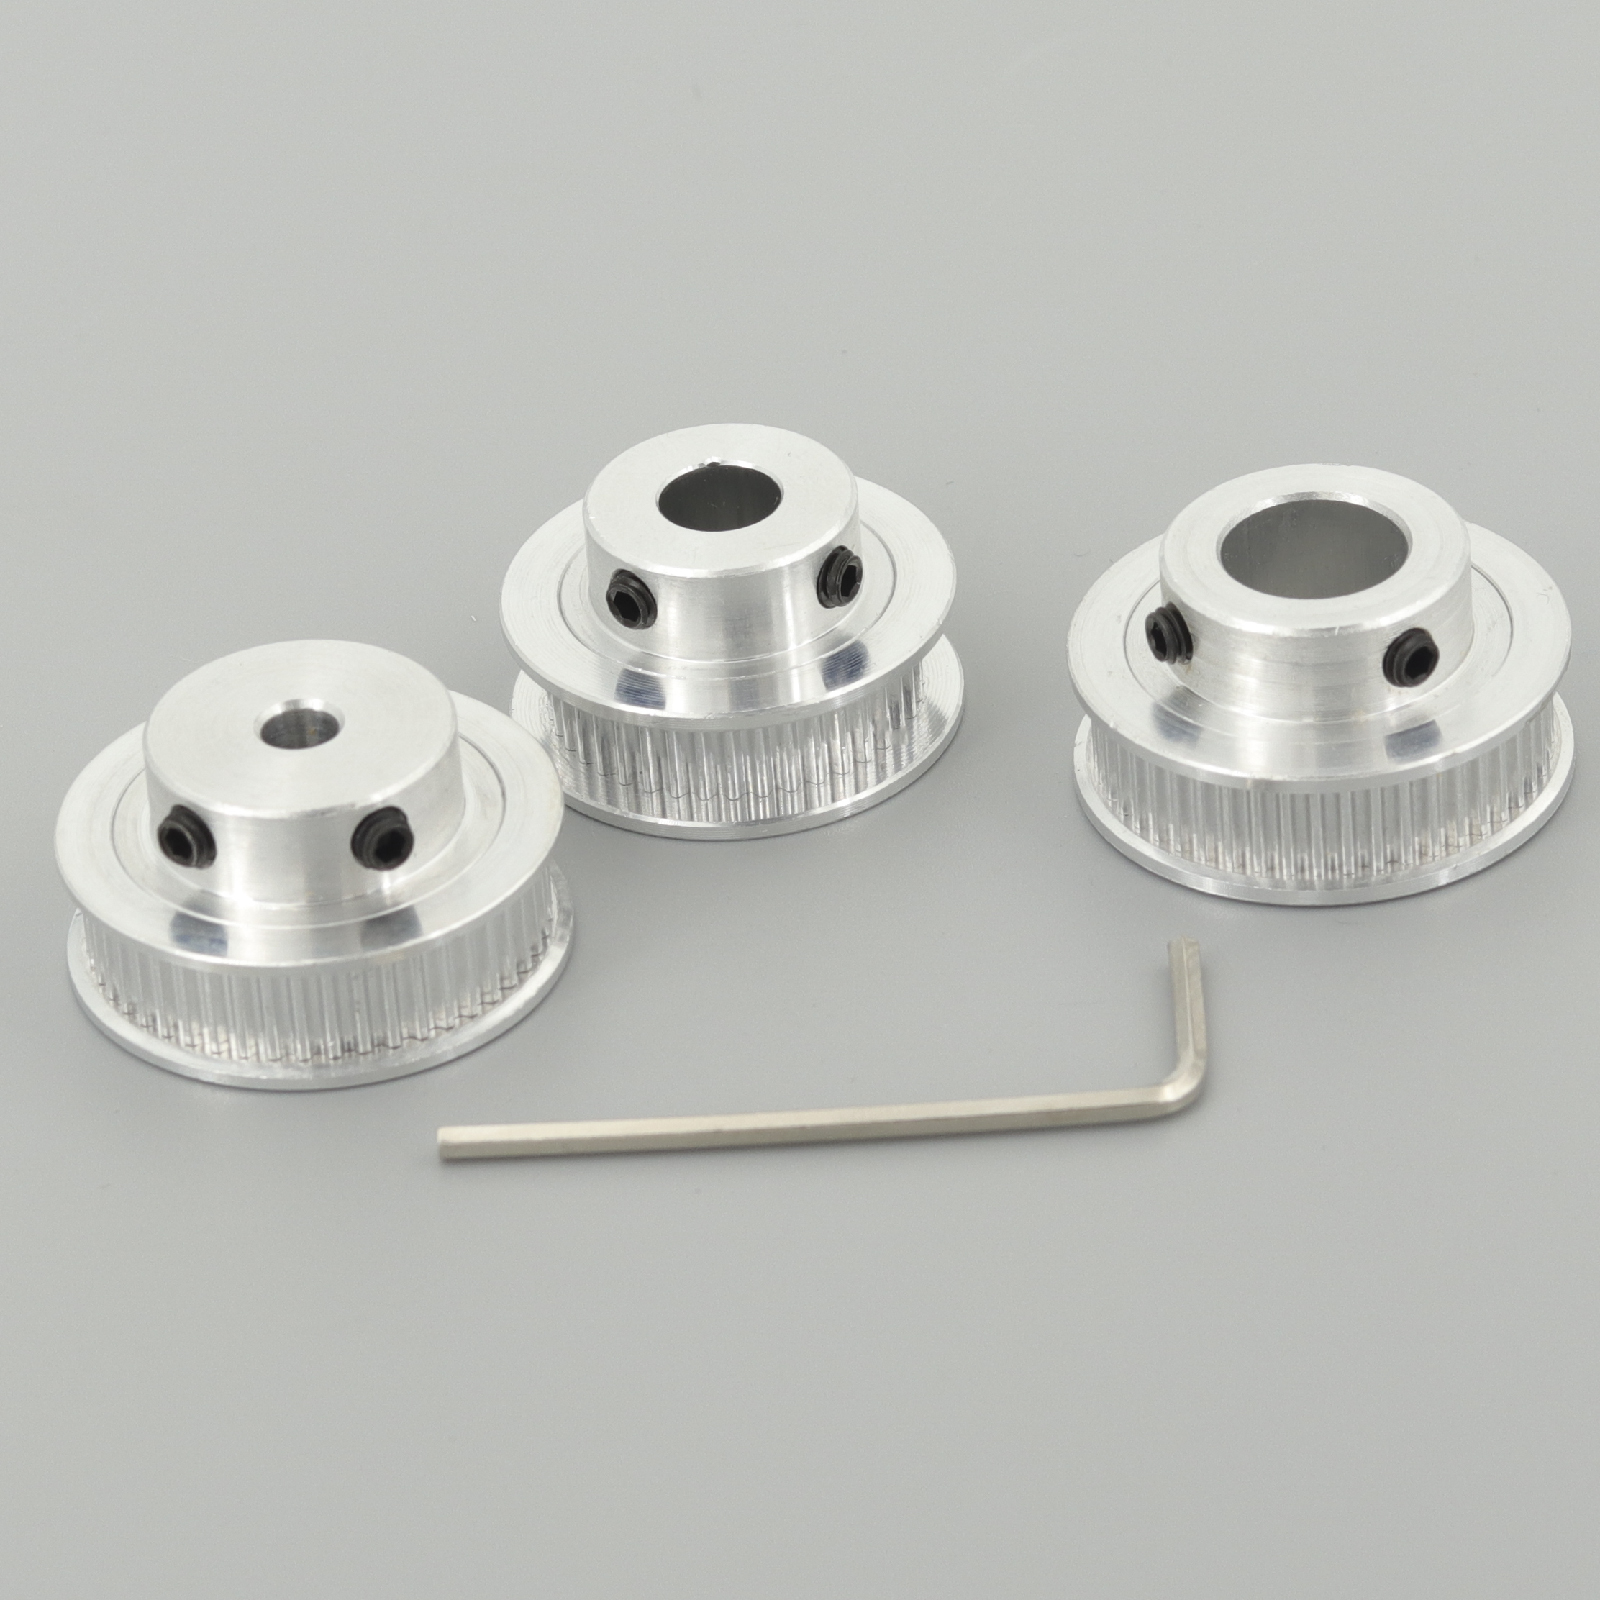 GKTOOLS GT2 Timing Pulley 2GT 48 Tooth Teeth Bore 5/6/6.35/8/10/12mm Synchronous Wheels Width 6mm Belt 3D Printer Parts